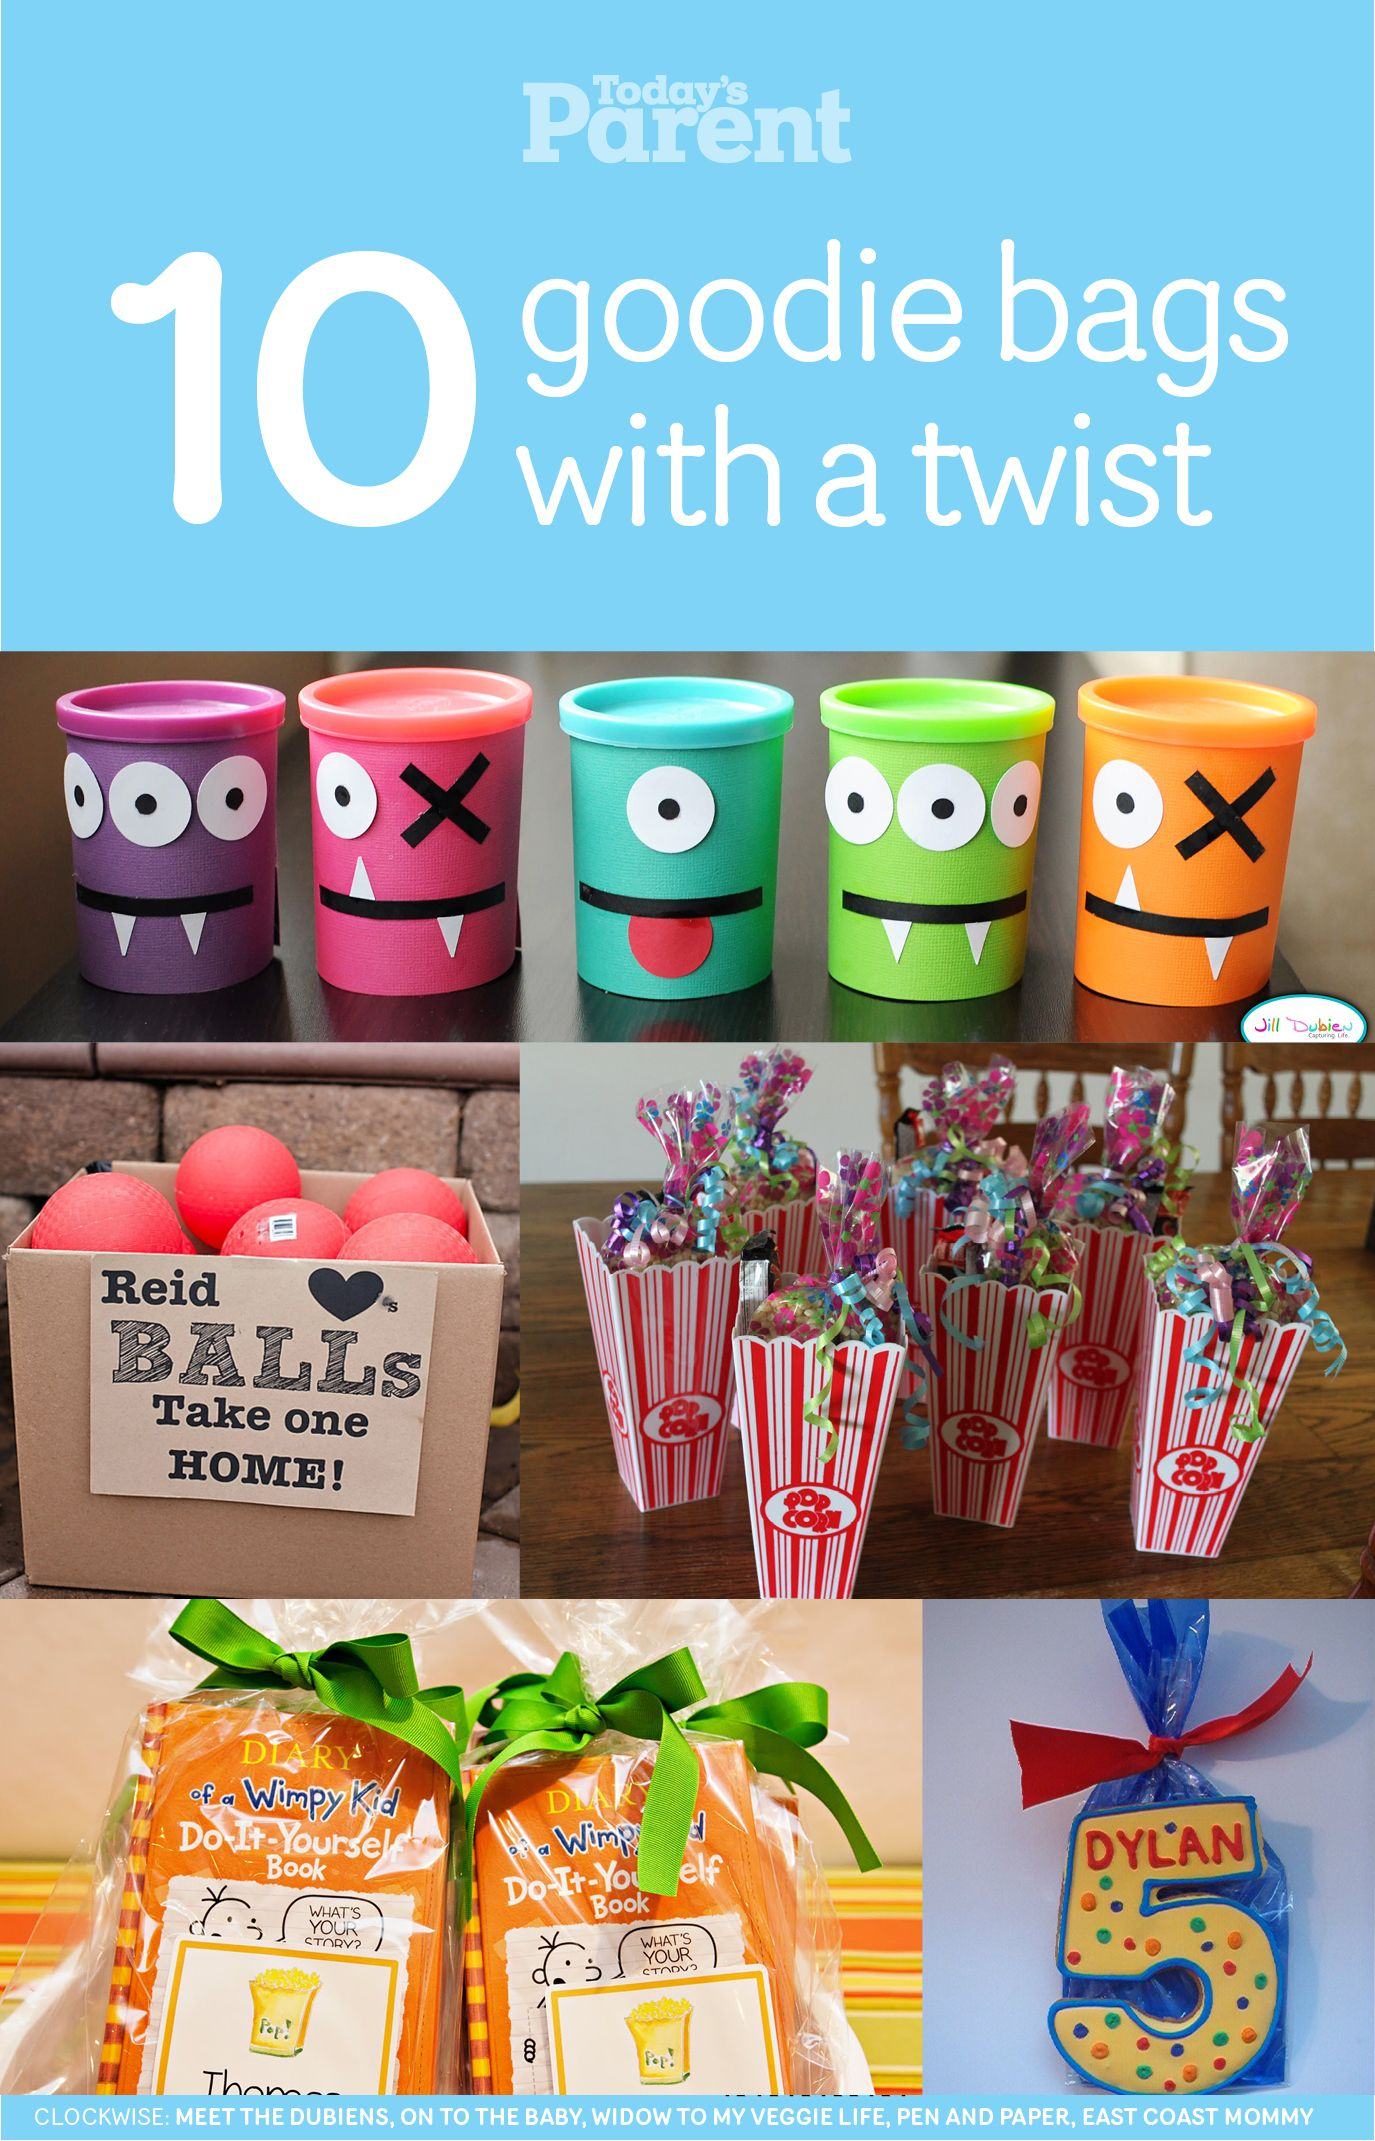 14 Goodie Bags With A Twist Today S Parent Party Favors For Kids Birthday Birthday Party Goodie Bags Kid Party Favors